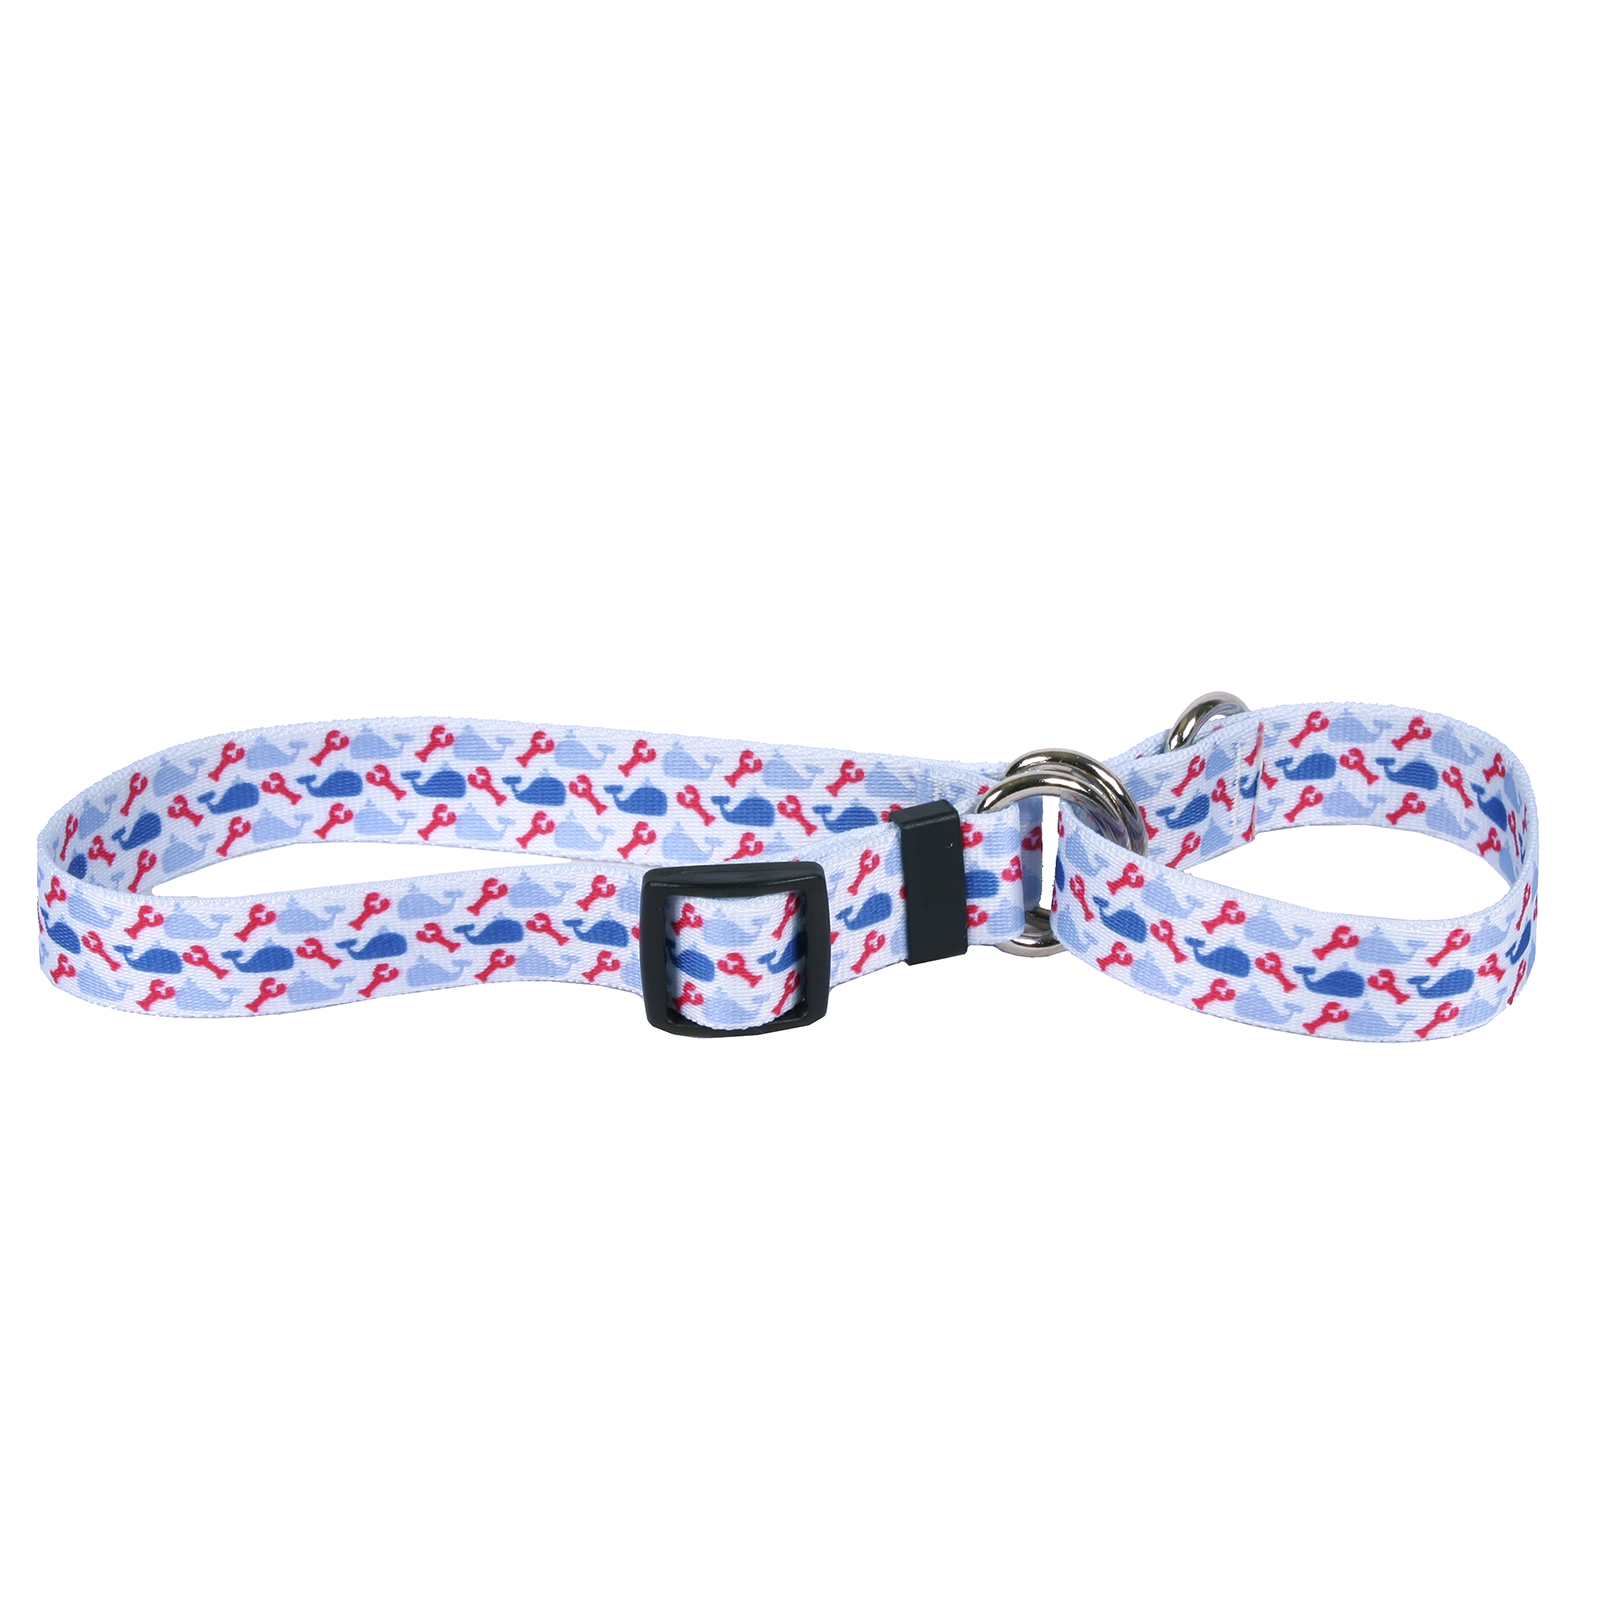 Whales & Lobsters Martingale Collar